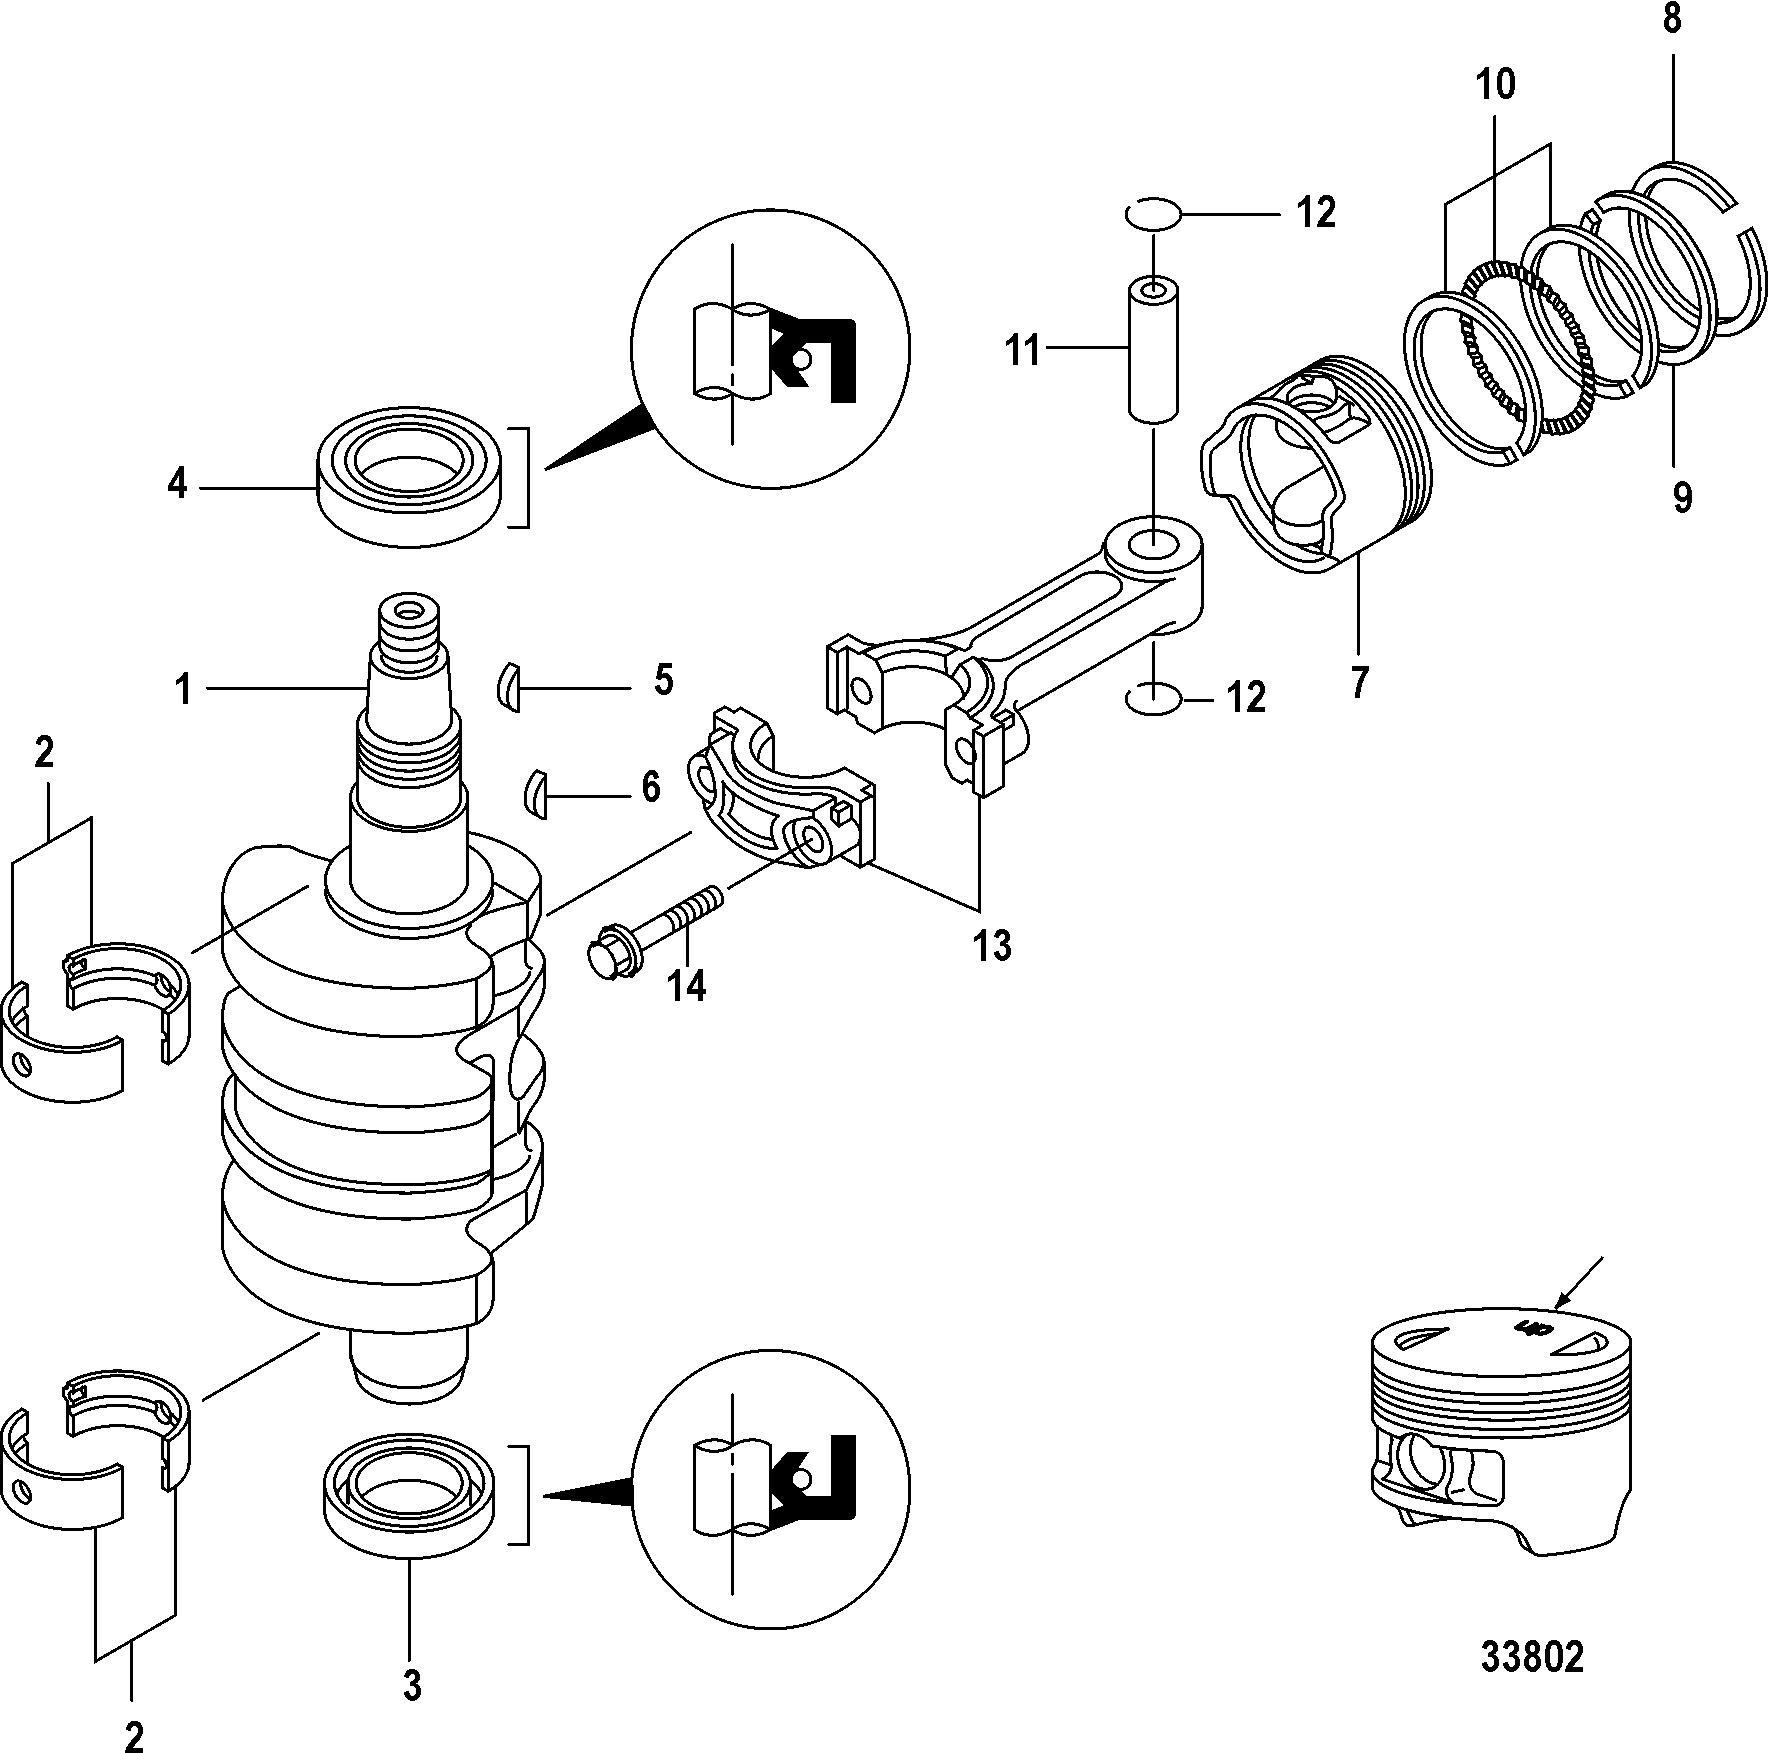 Mercury Mariner 20 Carb2cyl4 Stroke 0r235168 Up 302 Engine Diagram Piston Crankshaft Pistons And Connecting Rods